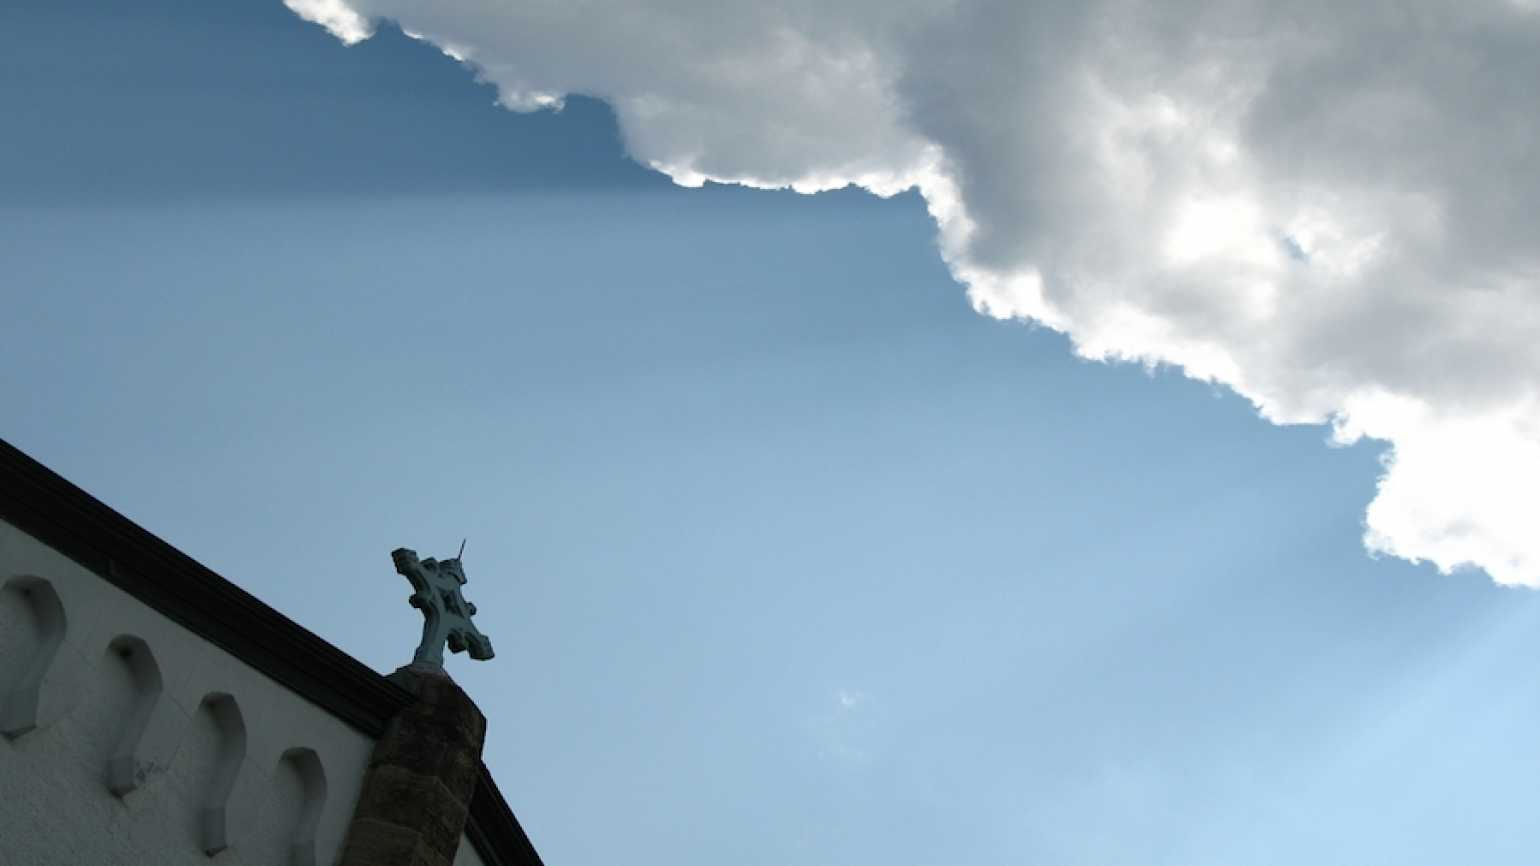 Cloudscape at Abbey of Gethsemani. Photo by Brother Christian.